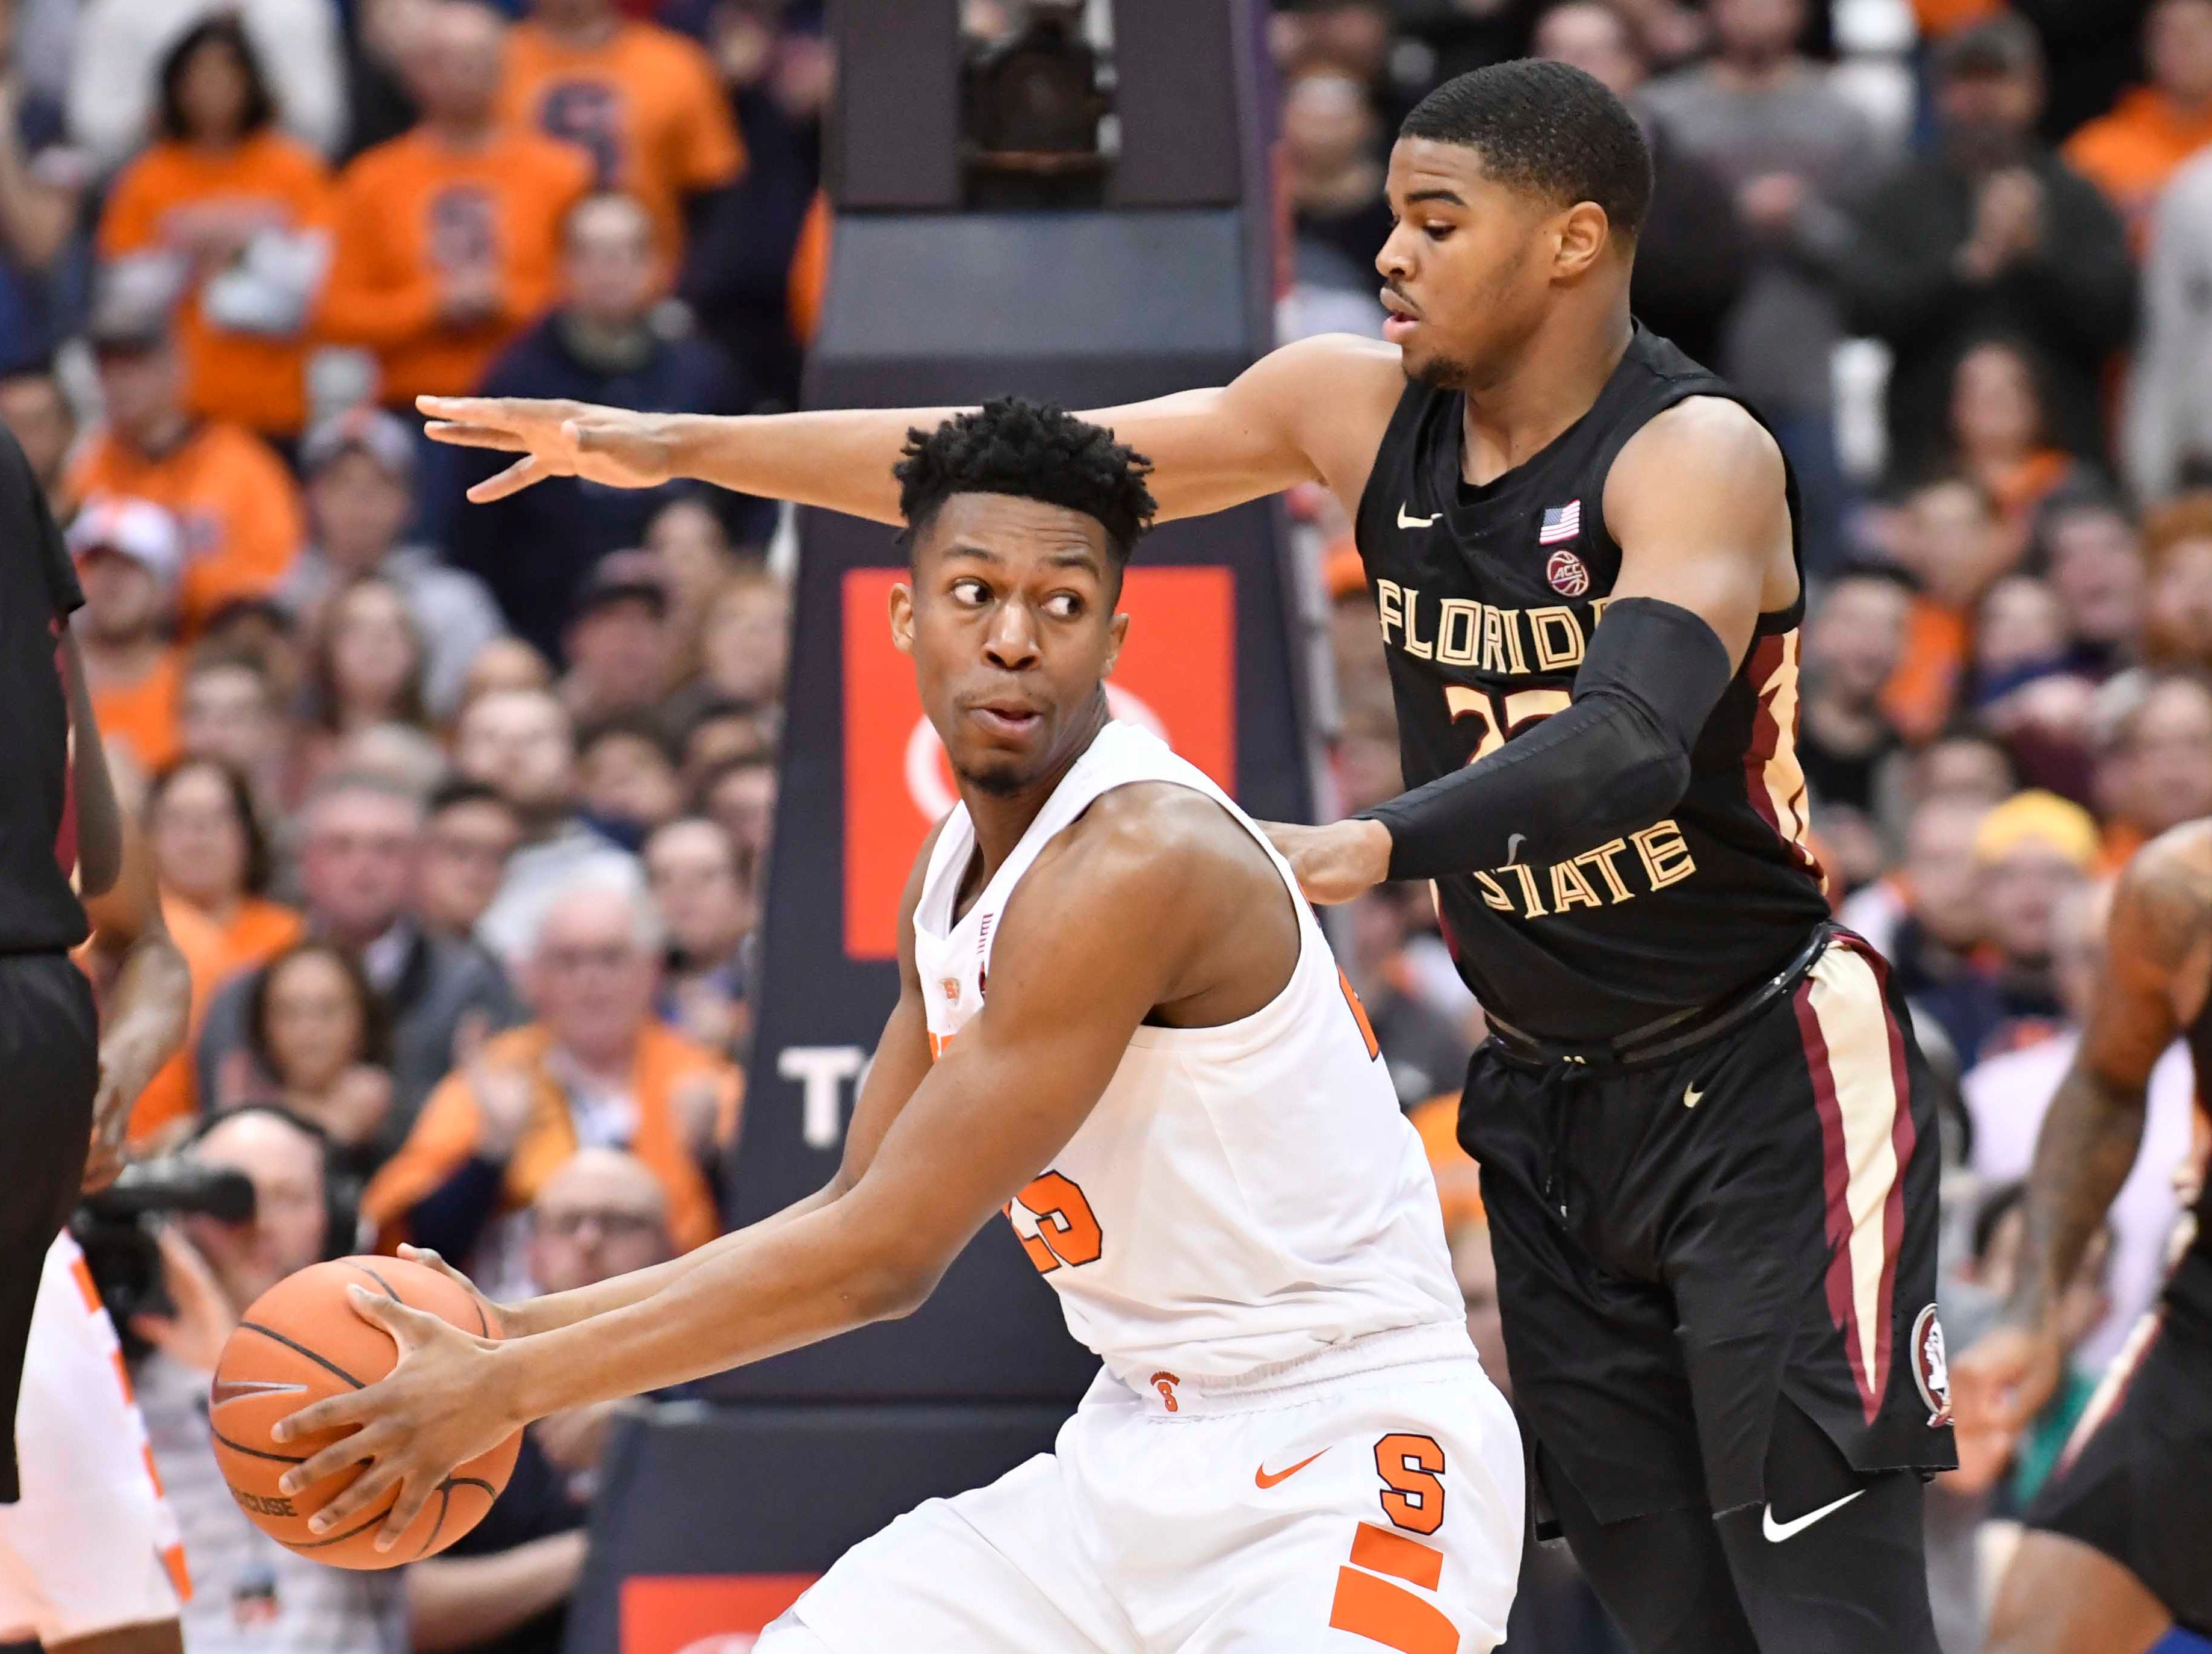 Feb 5, 2019; Syracuse, NY, USA; Syracuse Orange guard Tyus Battle (25) looks to pass the ball as Florida State Seminoles guard M.J. Walker (23) defends in the first half at the Carrier Dome. Mandatory Credit: Mark Konezny-USA TODAY Sports